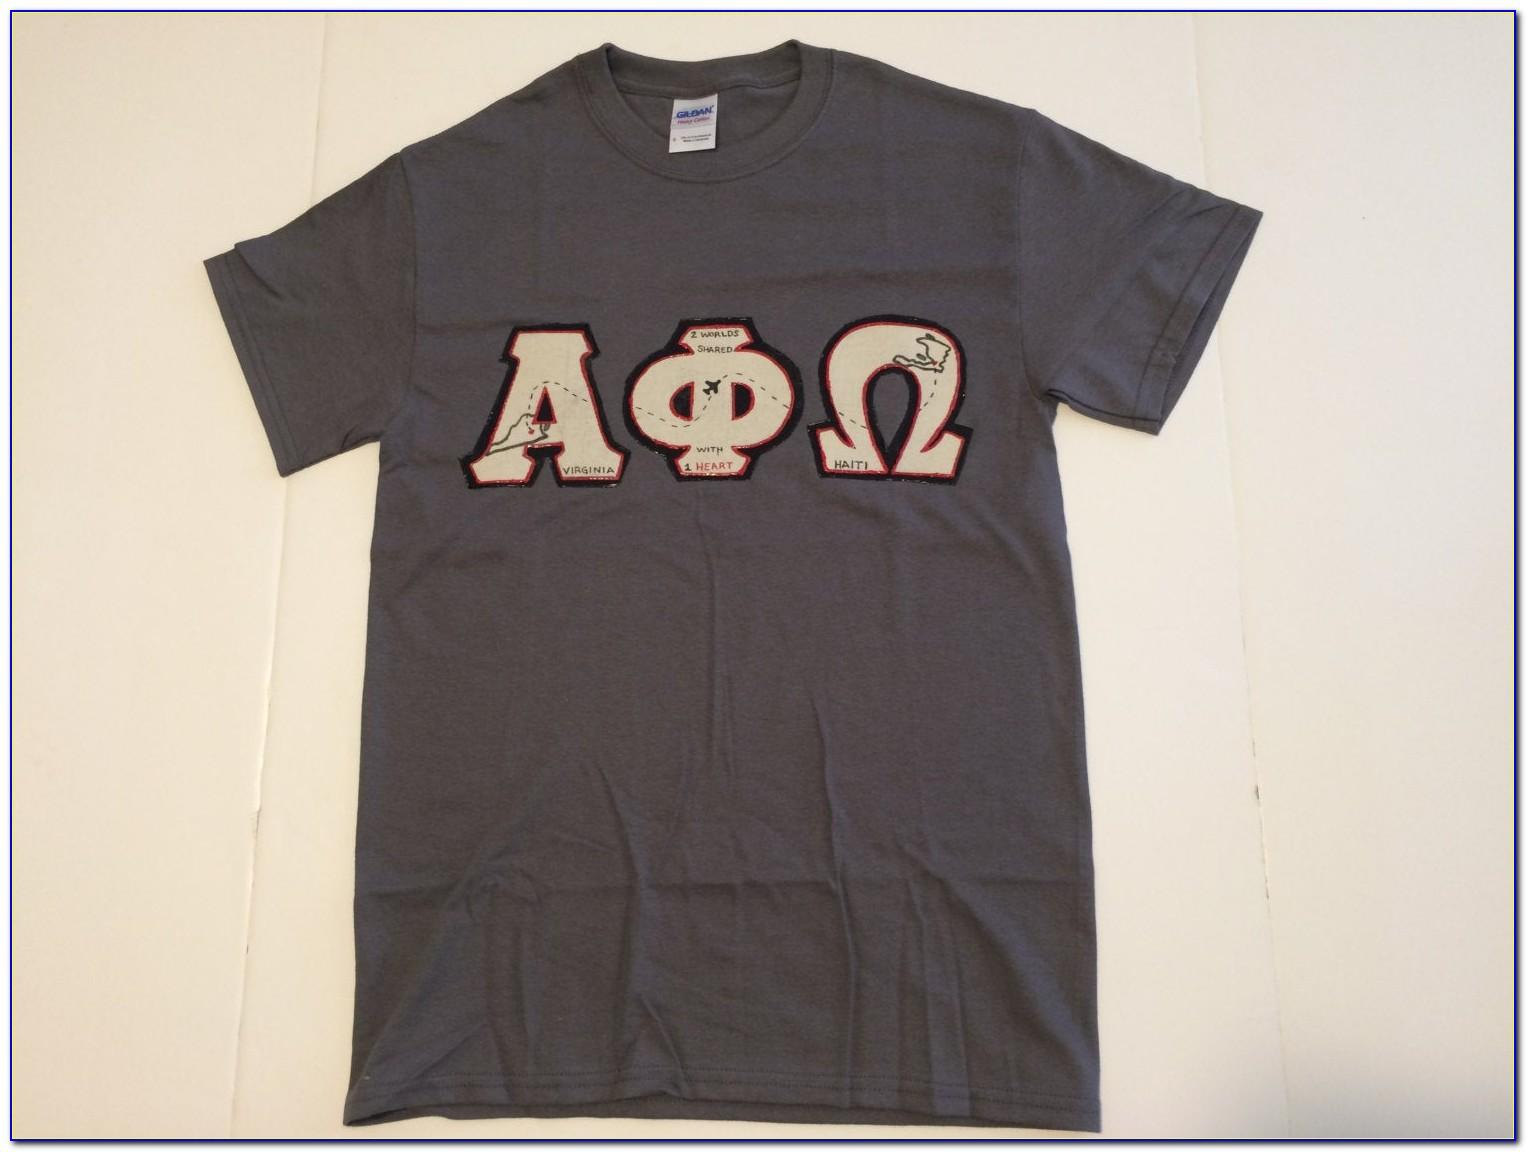 Greek Letters Shirts